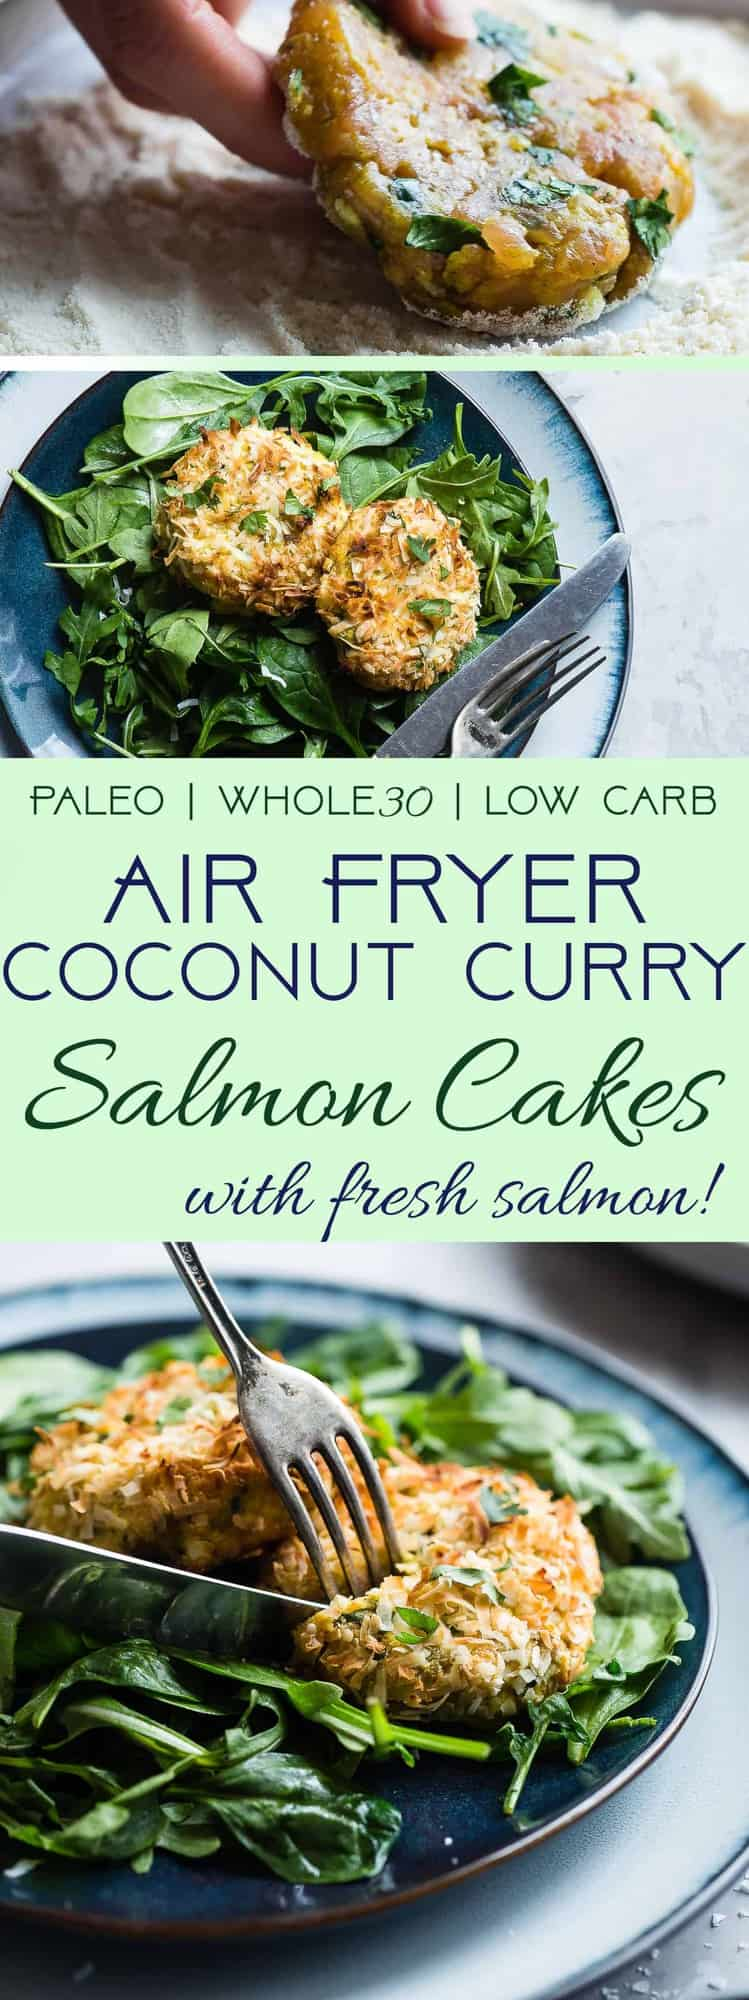 Whole30 Air Fryer Coconut Curry Salmon Cakes - These gluten free salmon cakes are made in the air fryer so they're juicy and SO crispy without all the oil! A healthy, paleo friendly, grain/dairy/sugar free meal that is low carb! | #Foodfaithfitness | #glutenfree #paleo #whole30 #airfryer #lowcarb